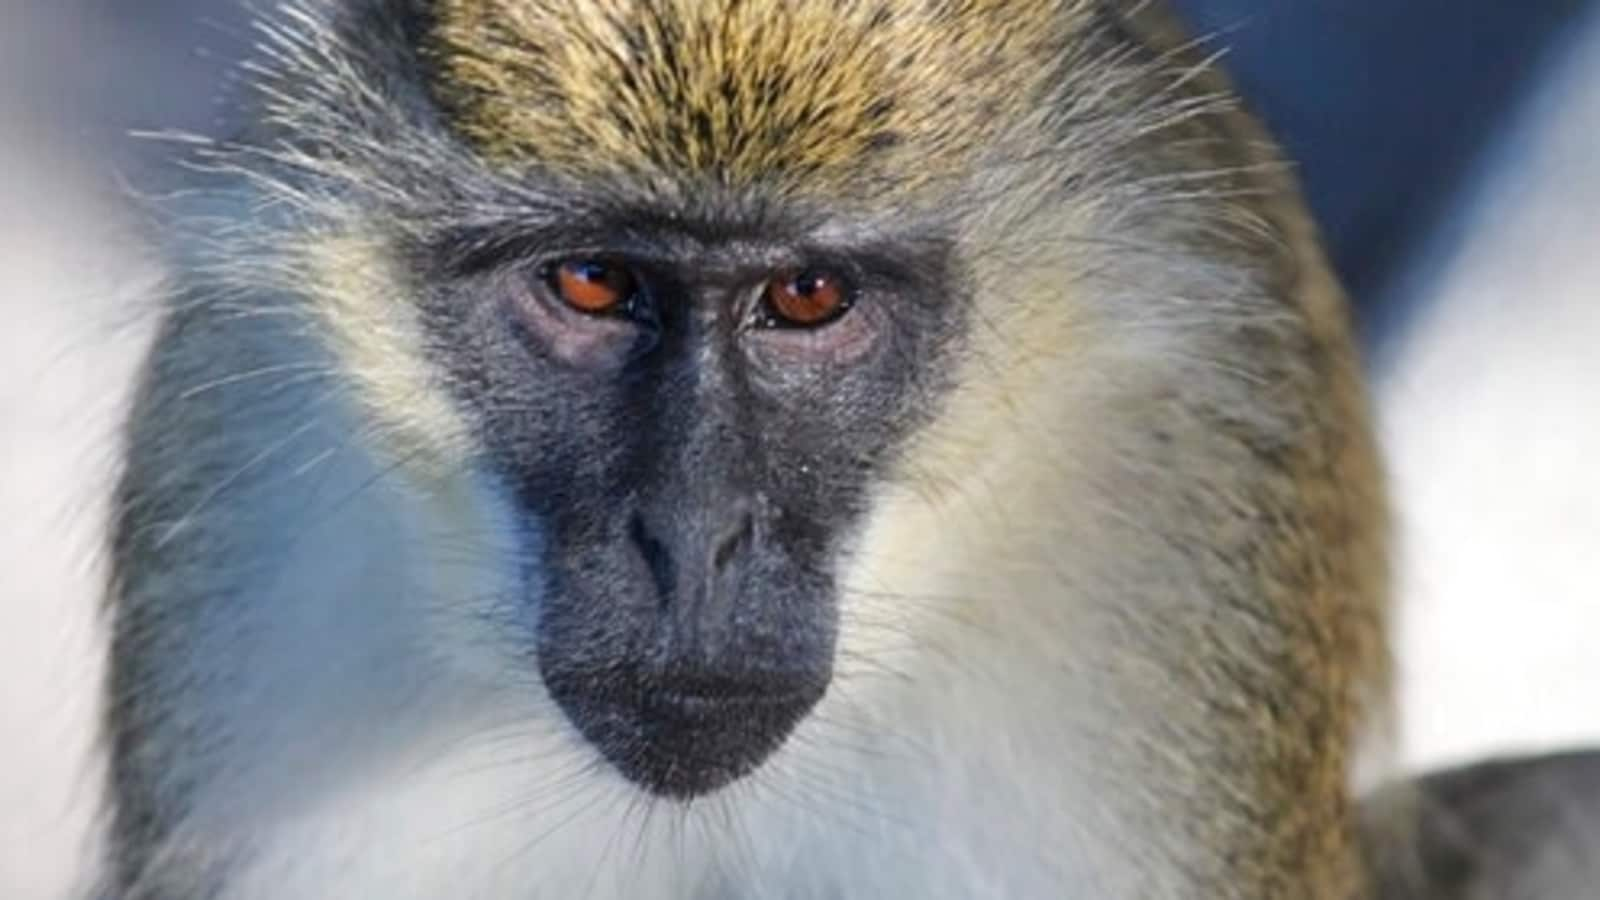 Monkey colony existent for 70 years discovered in Florida - Hindustan Times